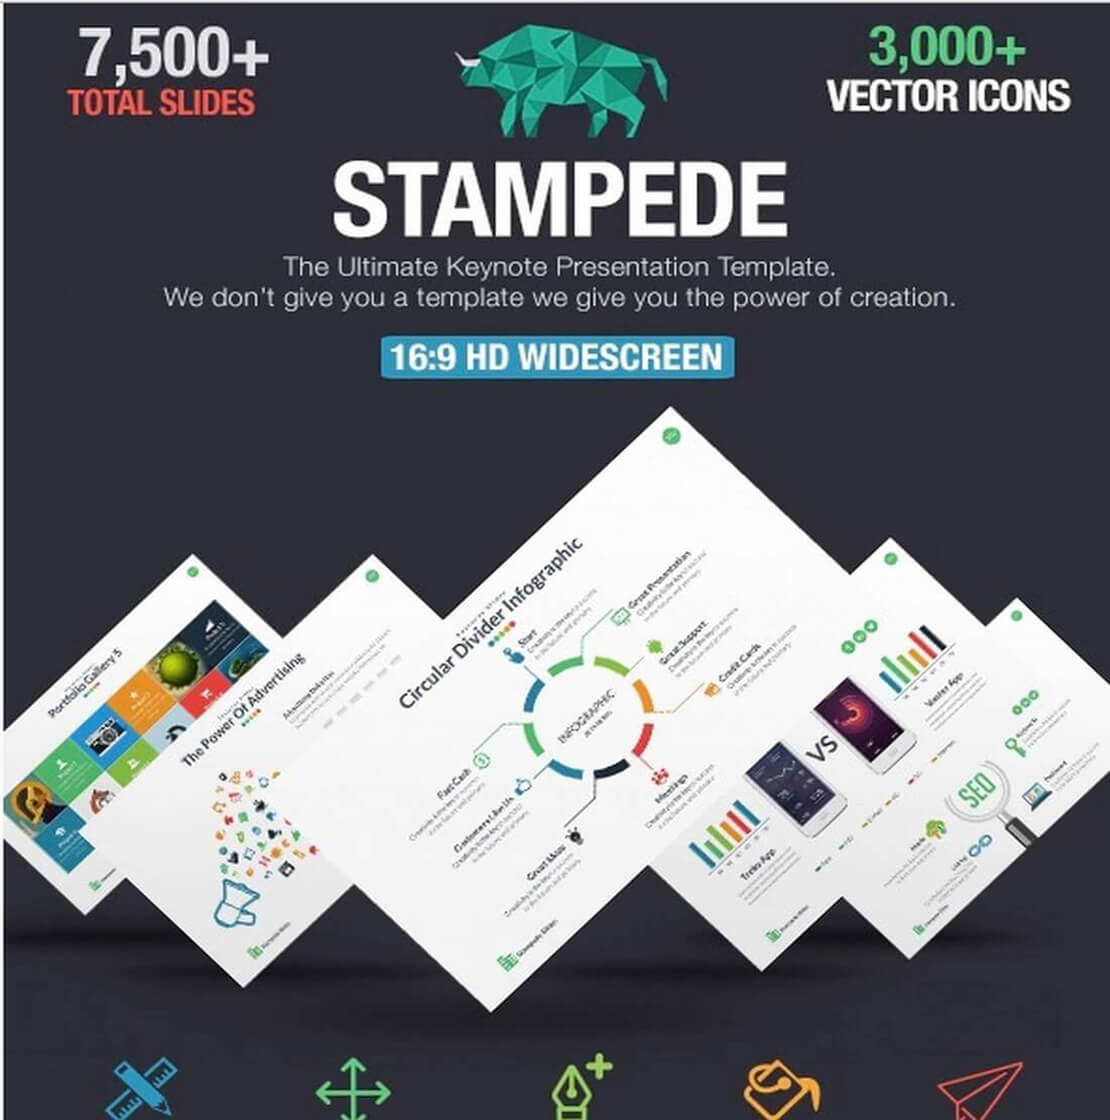 stampede Best Keynote Template For Presentation